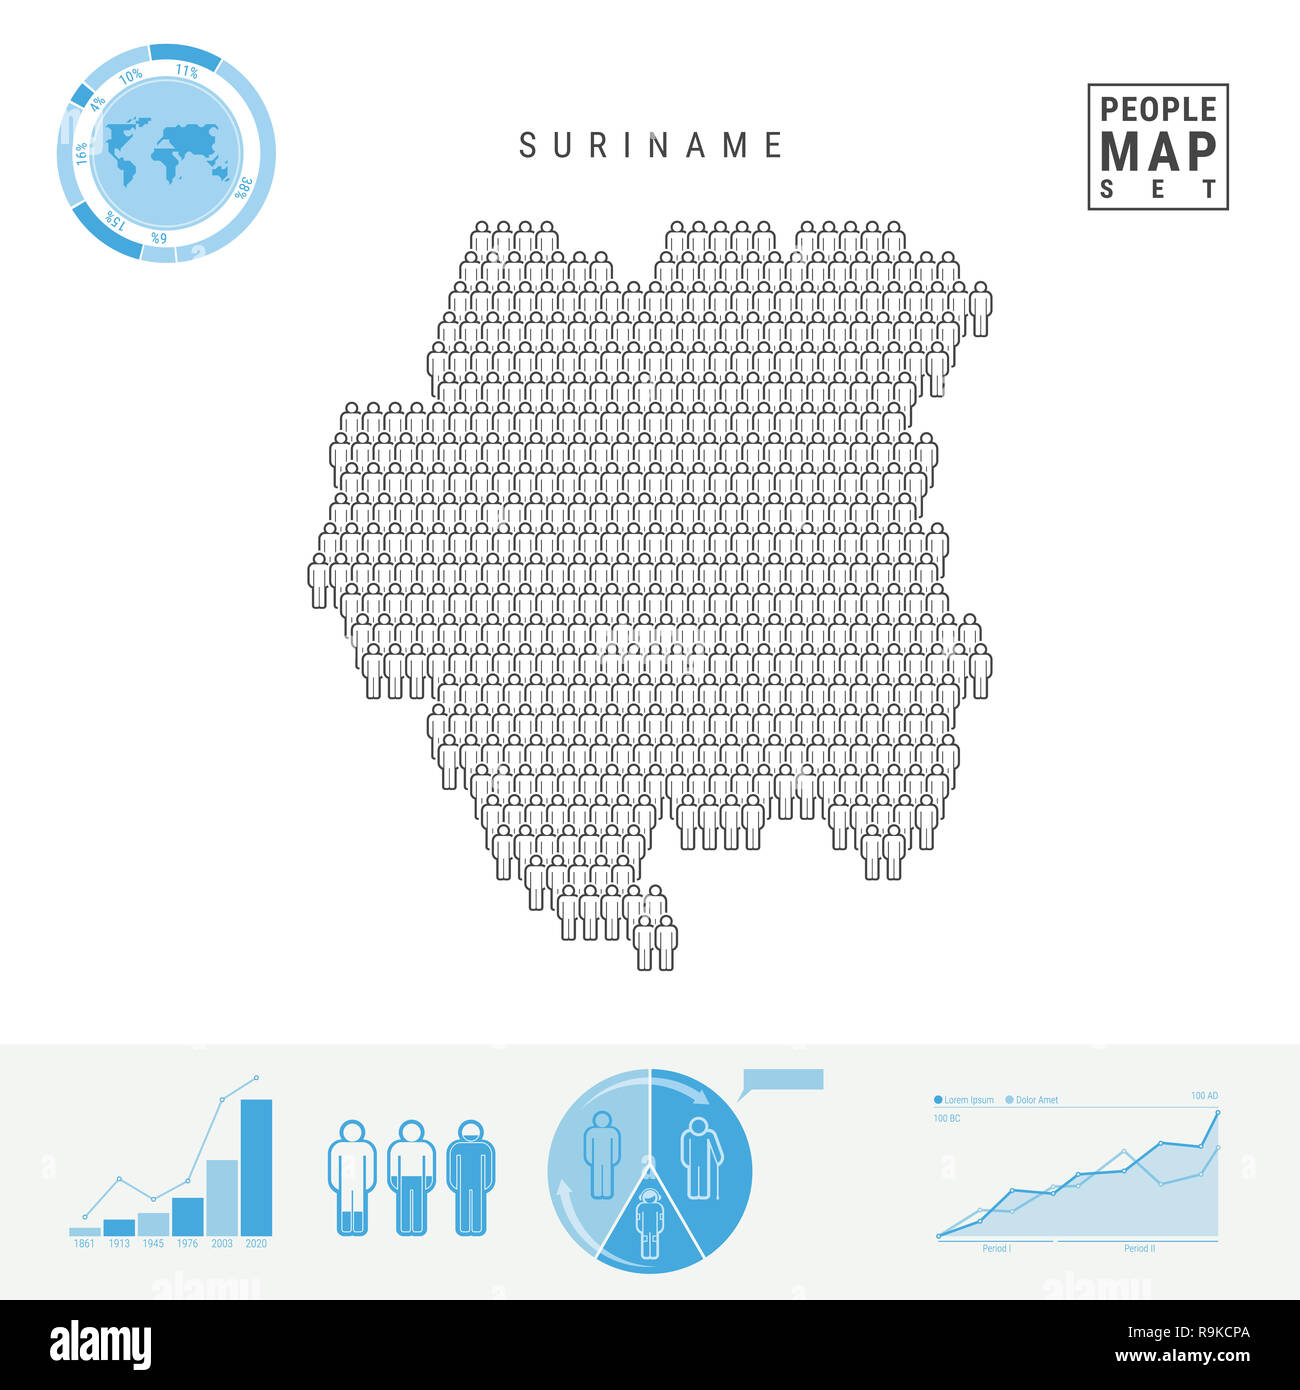 Suriname People Icon Map. People Crowd in the Shape of a Map of Suriname. Stylized Silhouette of Suriname. Population Growth and Aging Infographic Ele - Stock Image